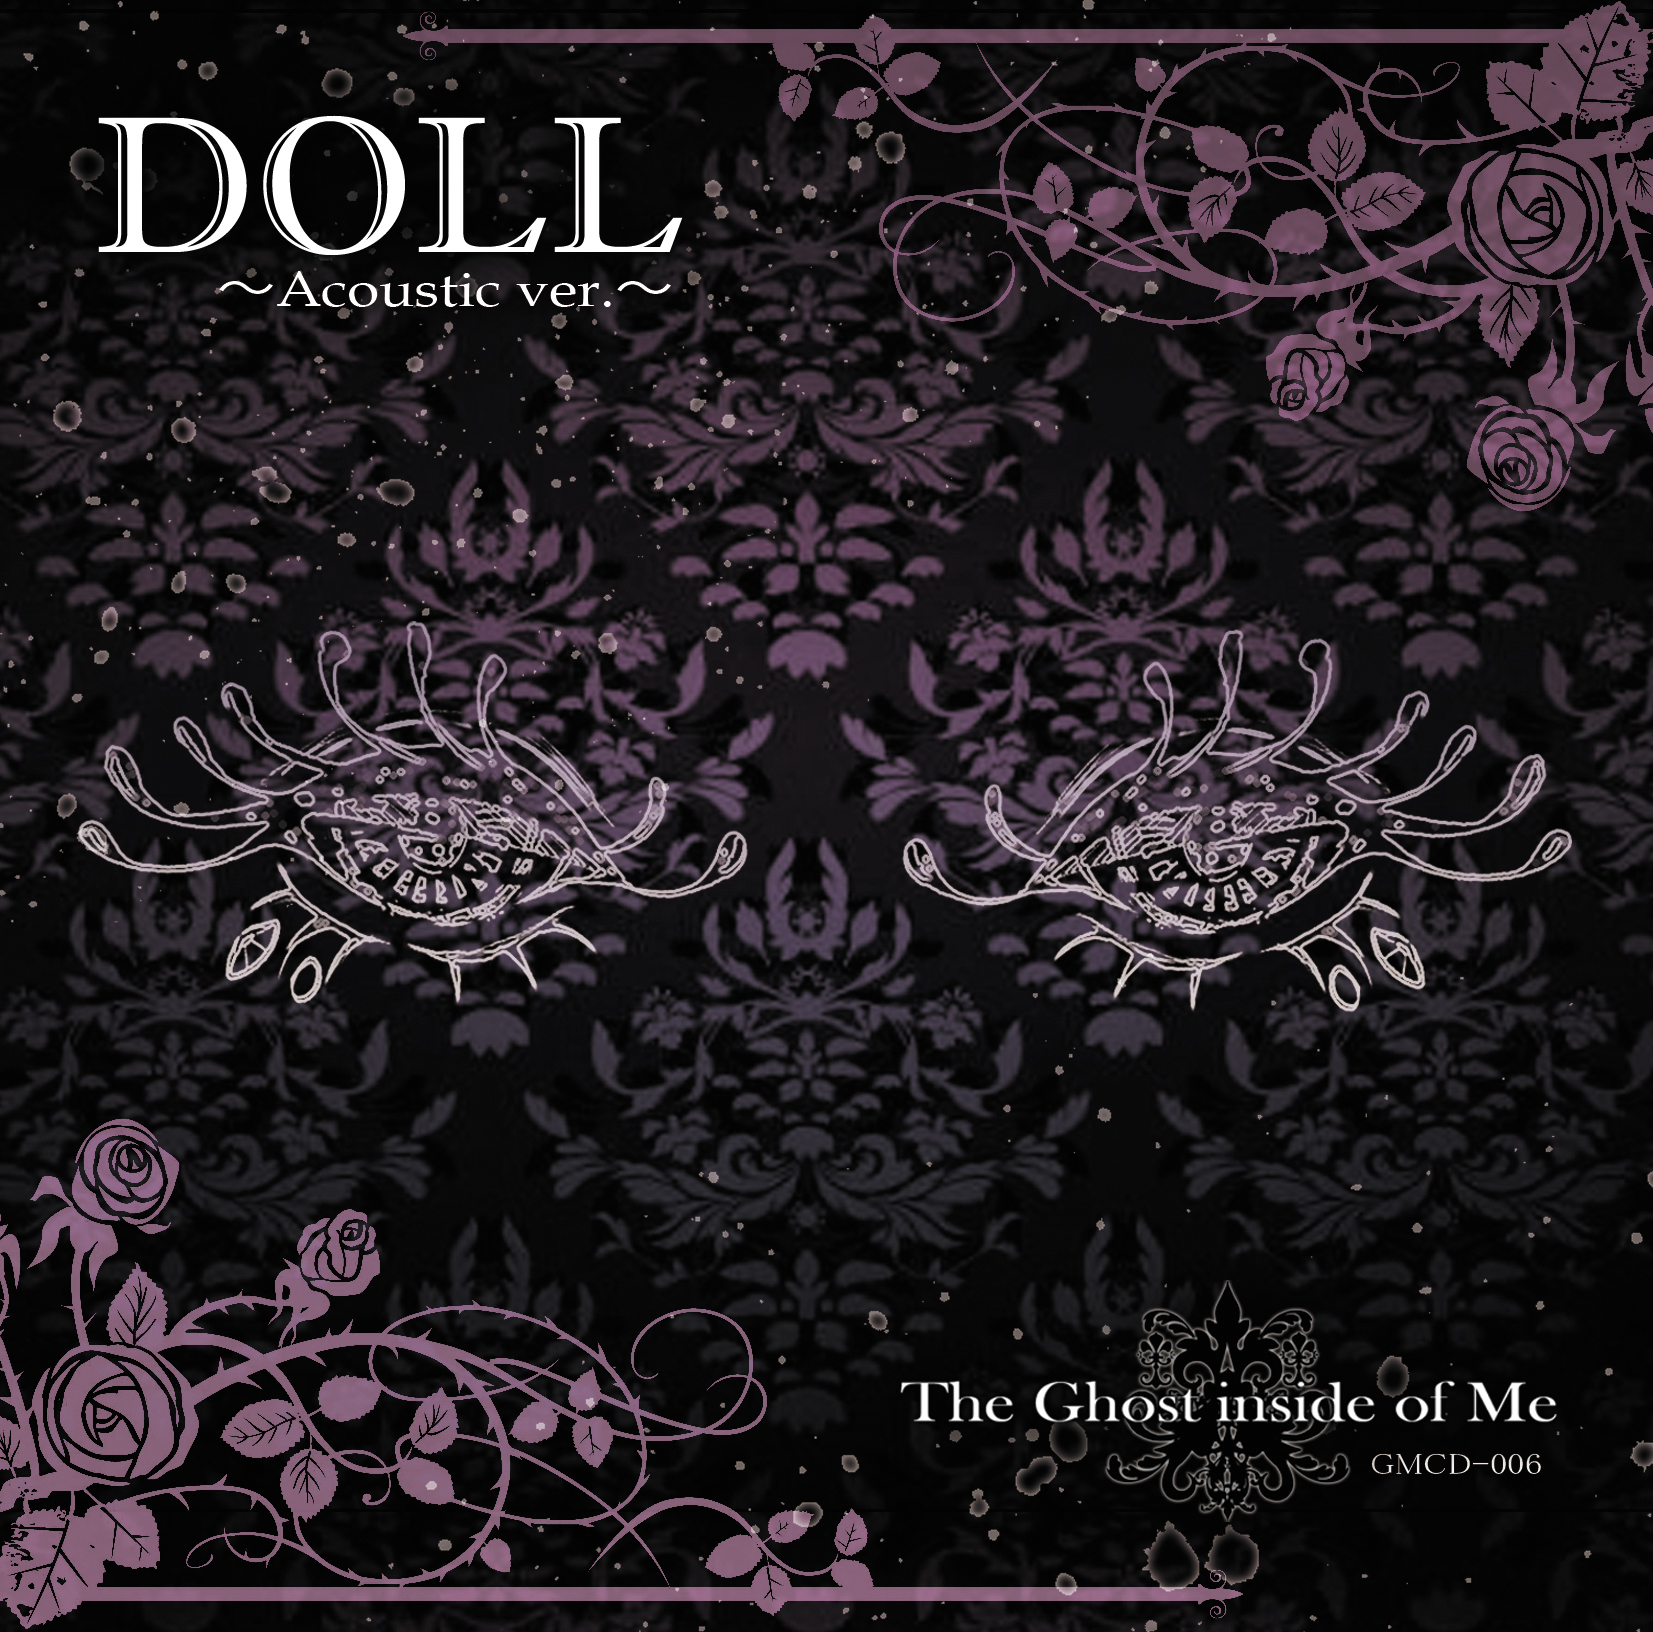 シマレコ限定single「DOLL~Acoustic ver.~」